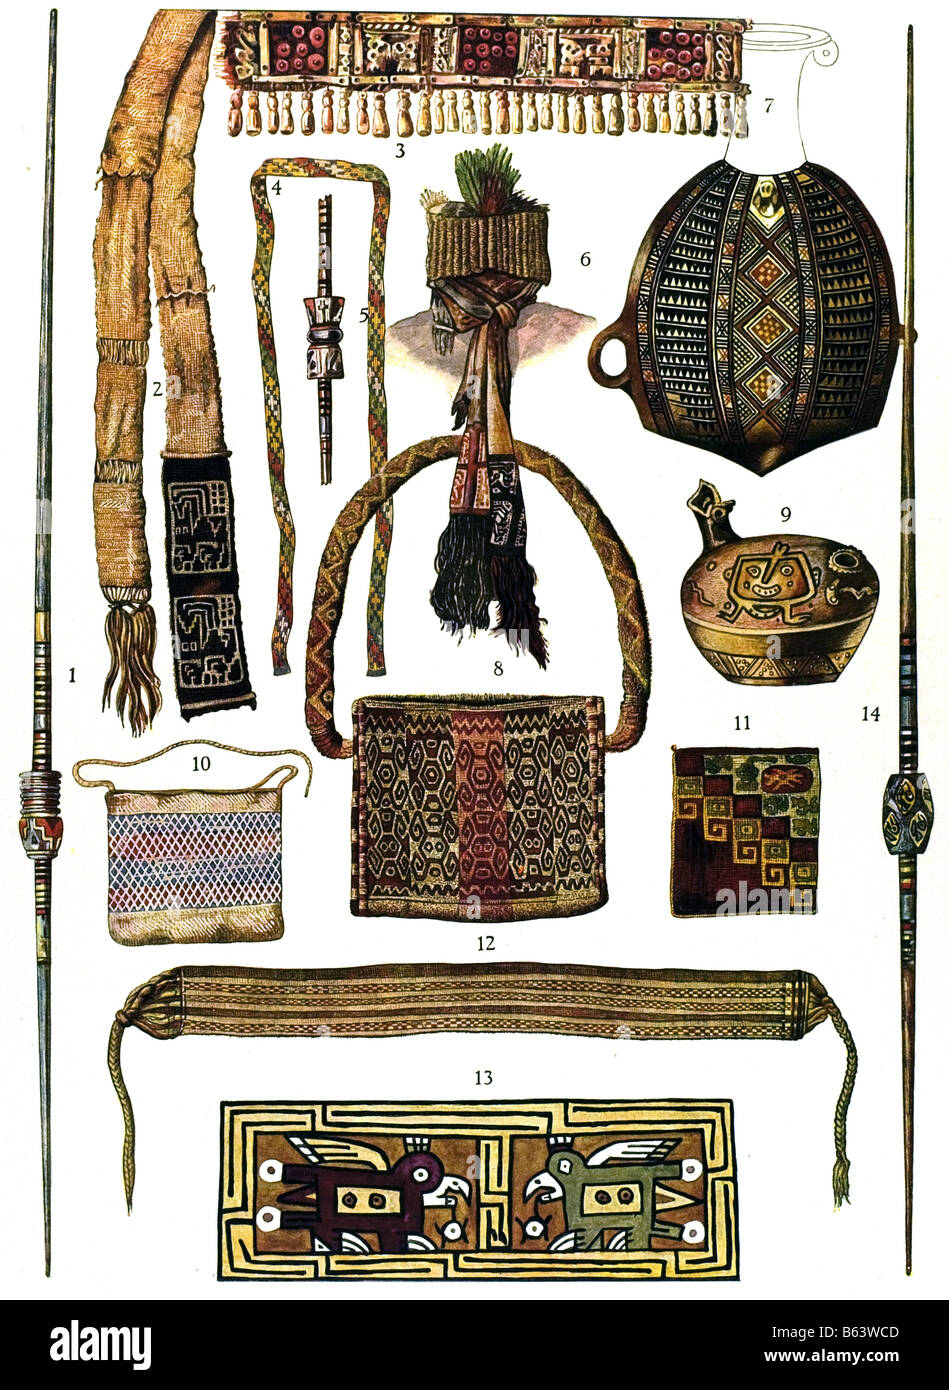 The Prehistorical Ornament / Equipment from the burial ground Ancona in Peru - Stock Image